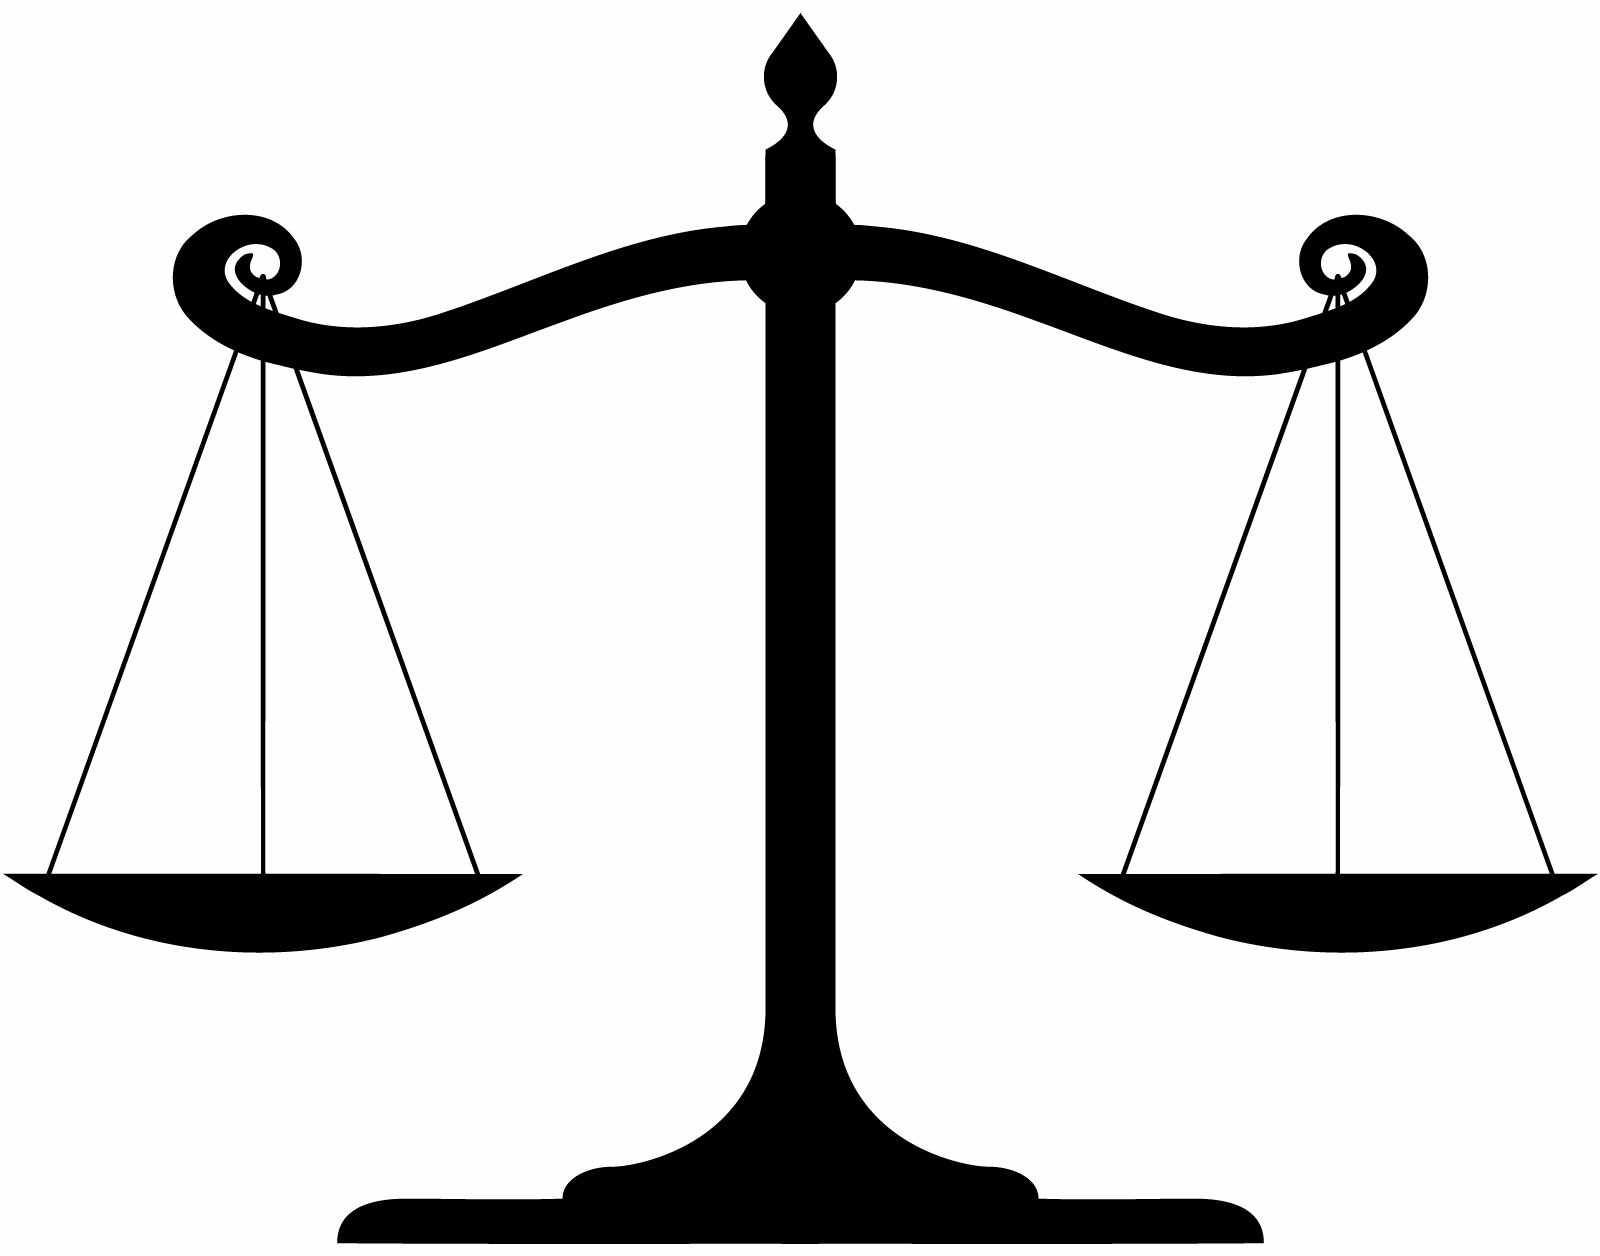 islam encourages social justice this article by ajmal masroor deals rh pinterest com Lady Justice Clip Art Criminal Justice Clip Art